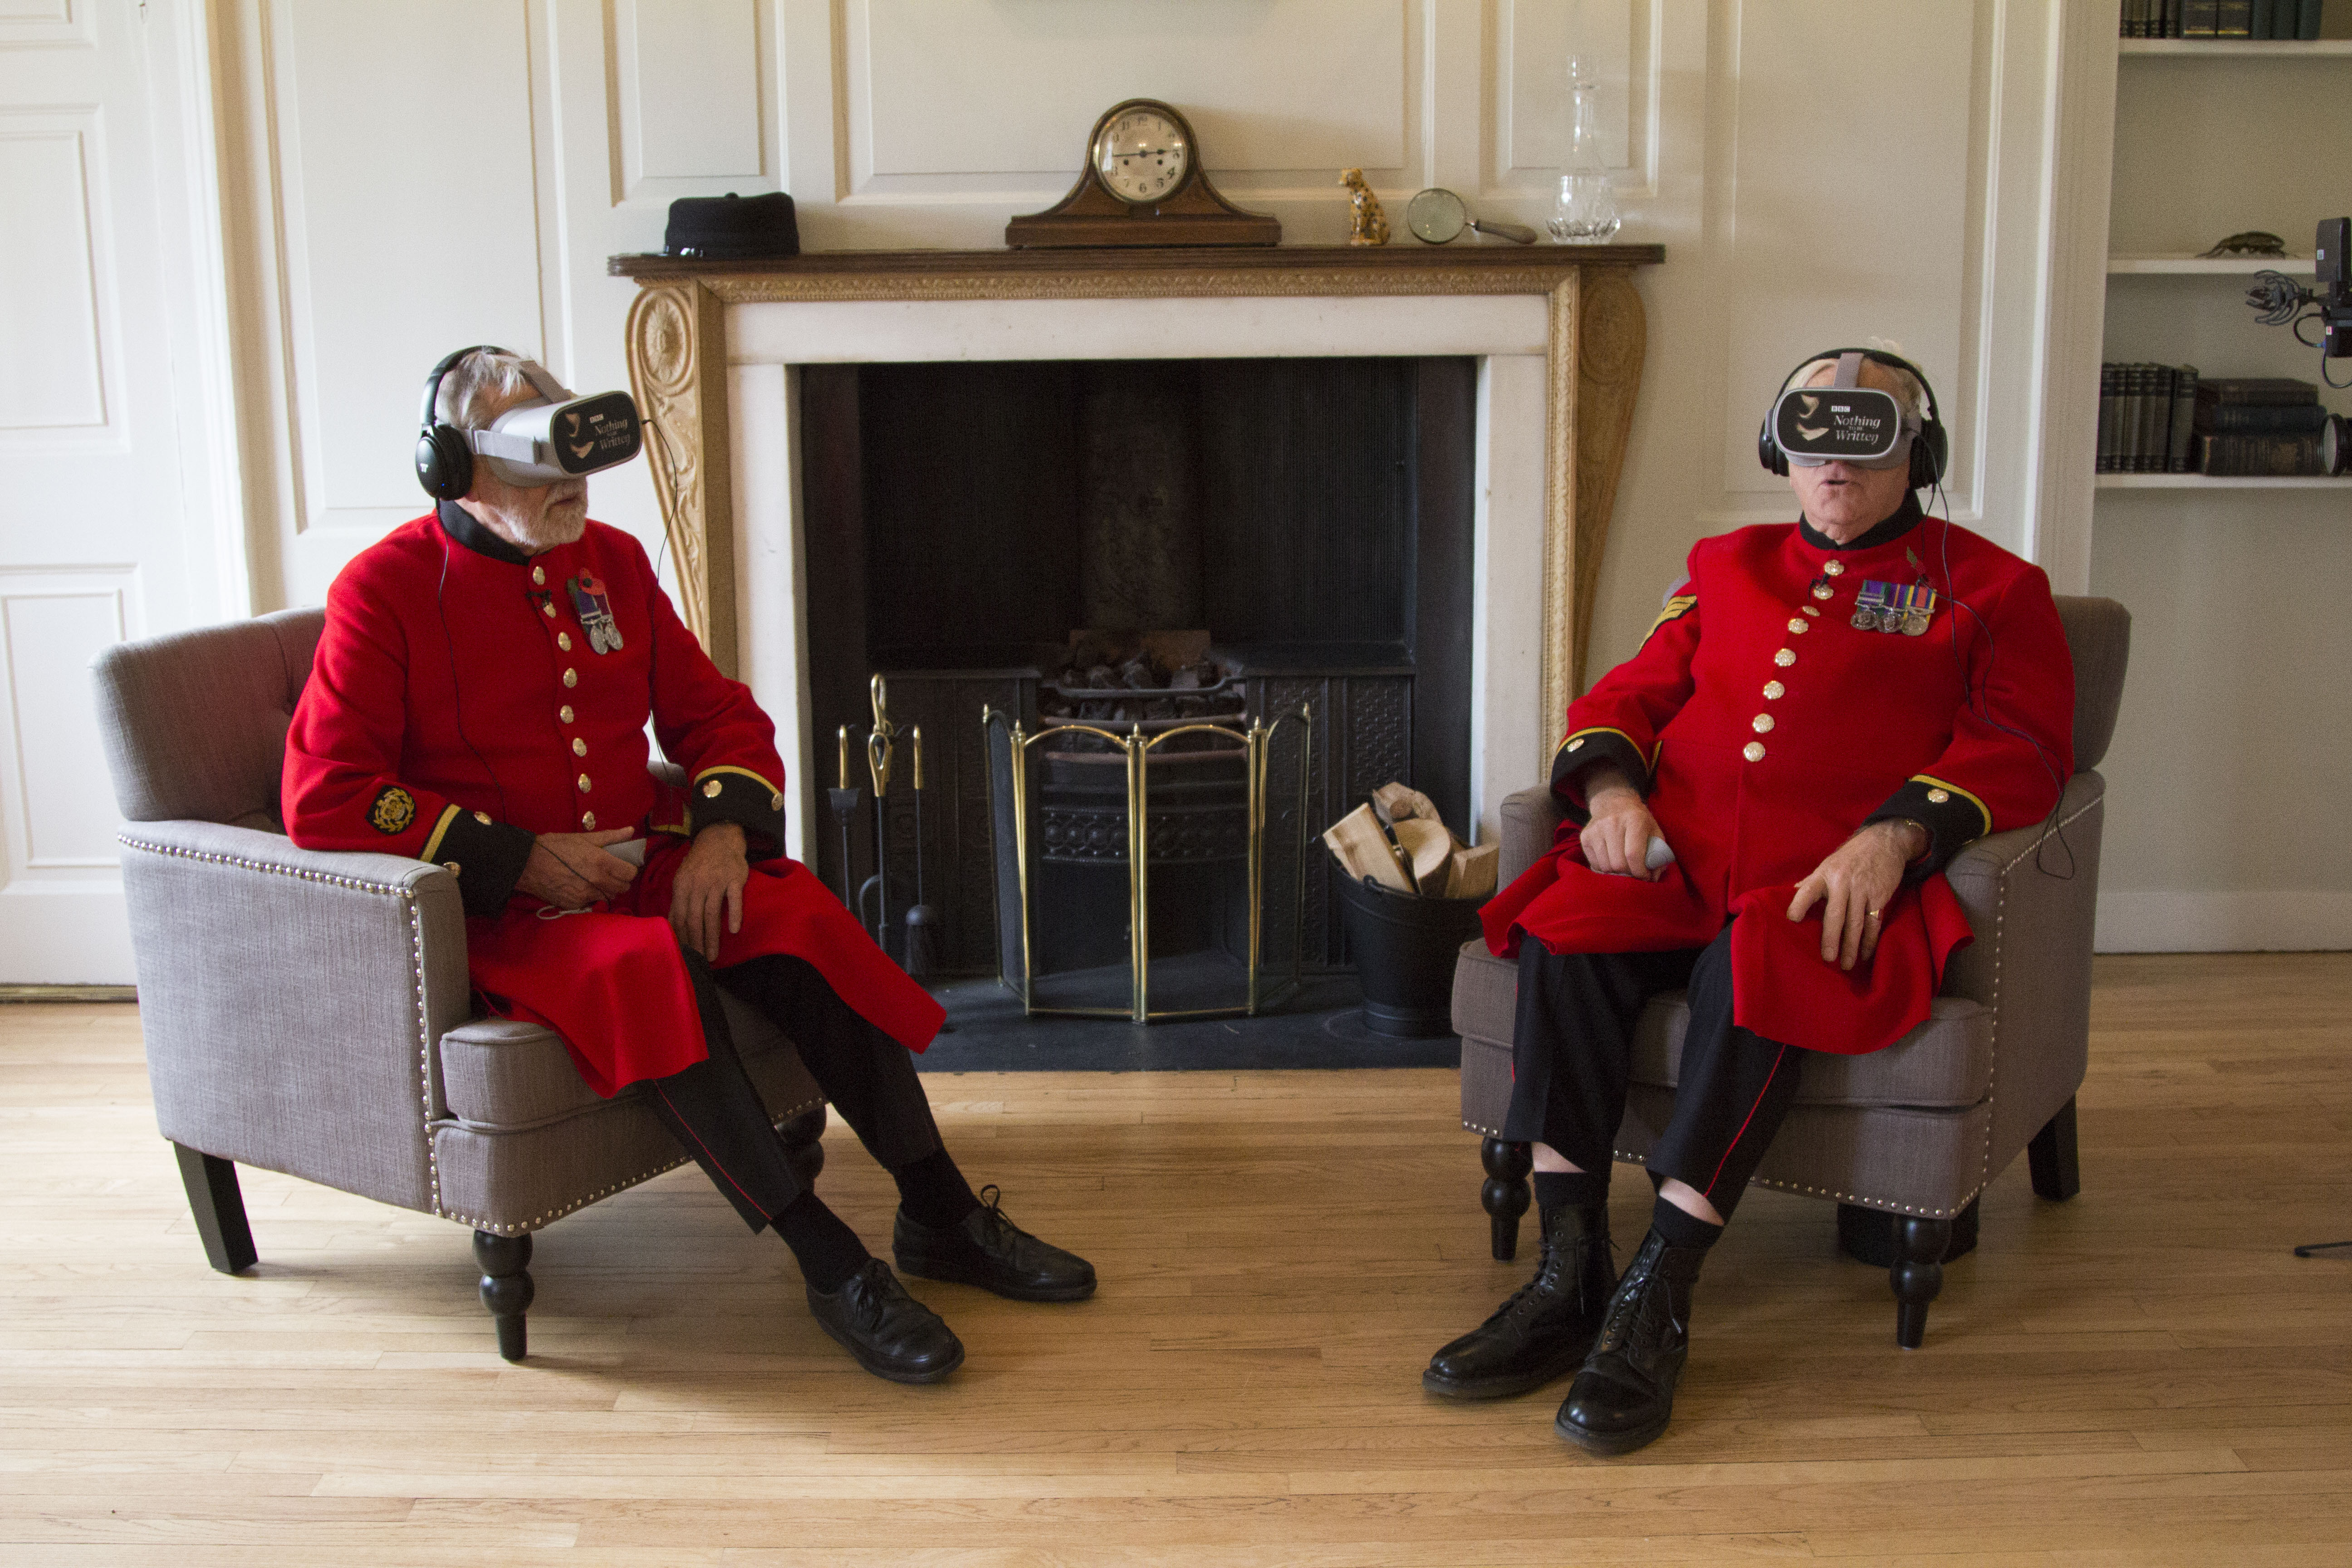 Chelsea Pensioners wearing VR headsets